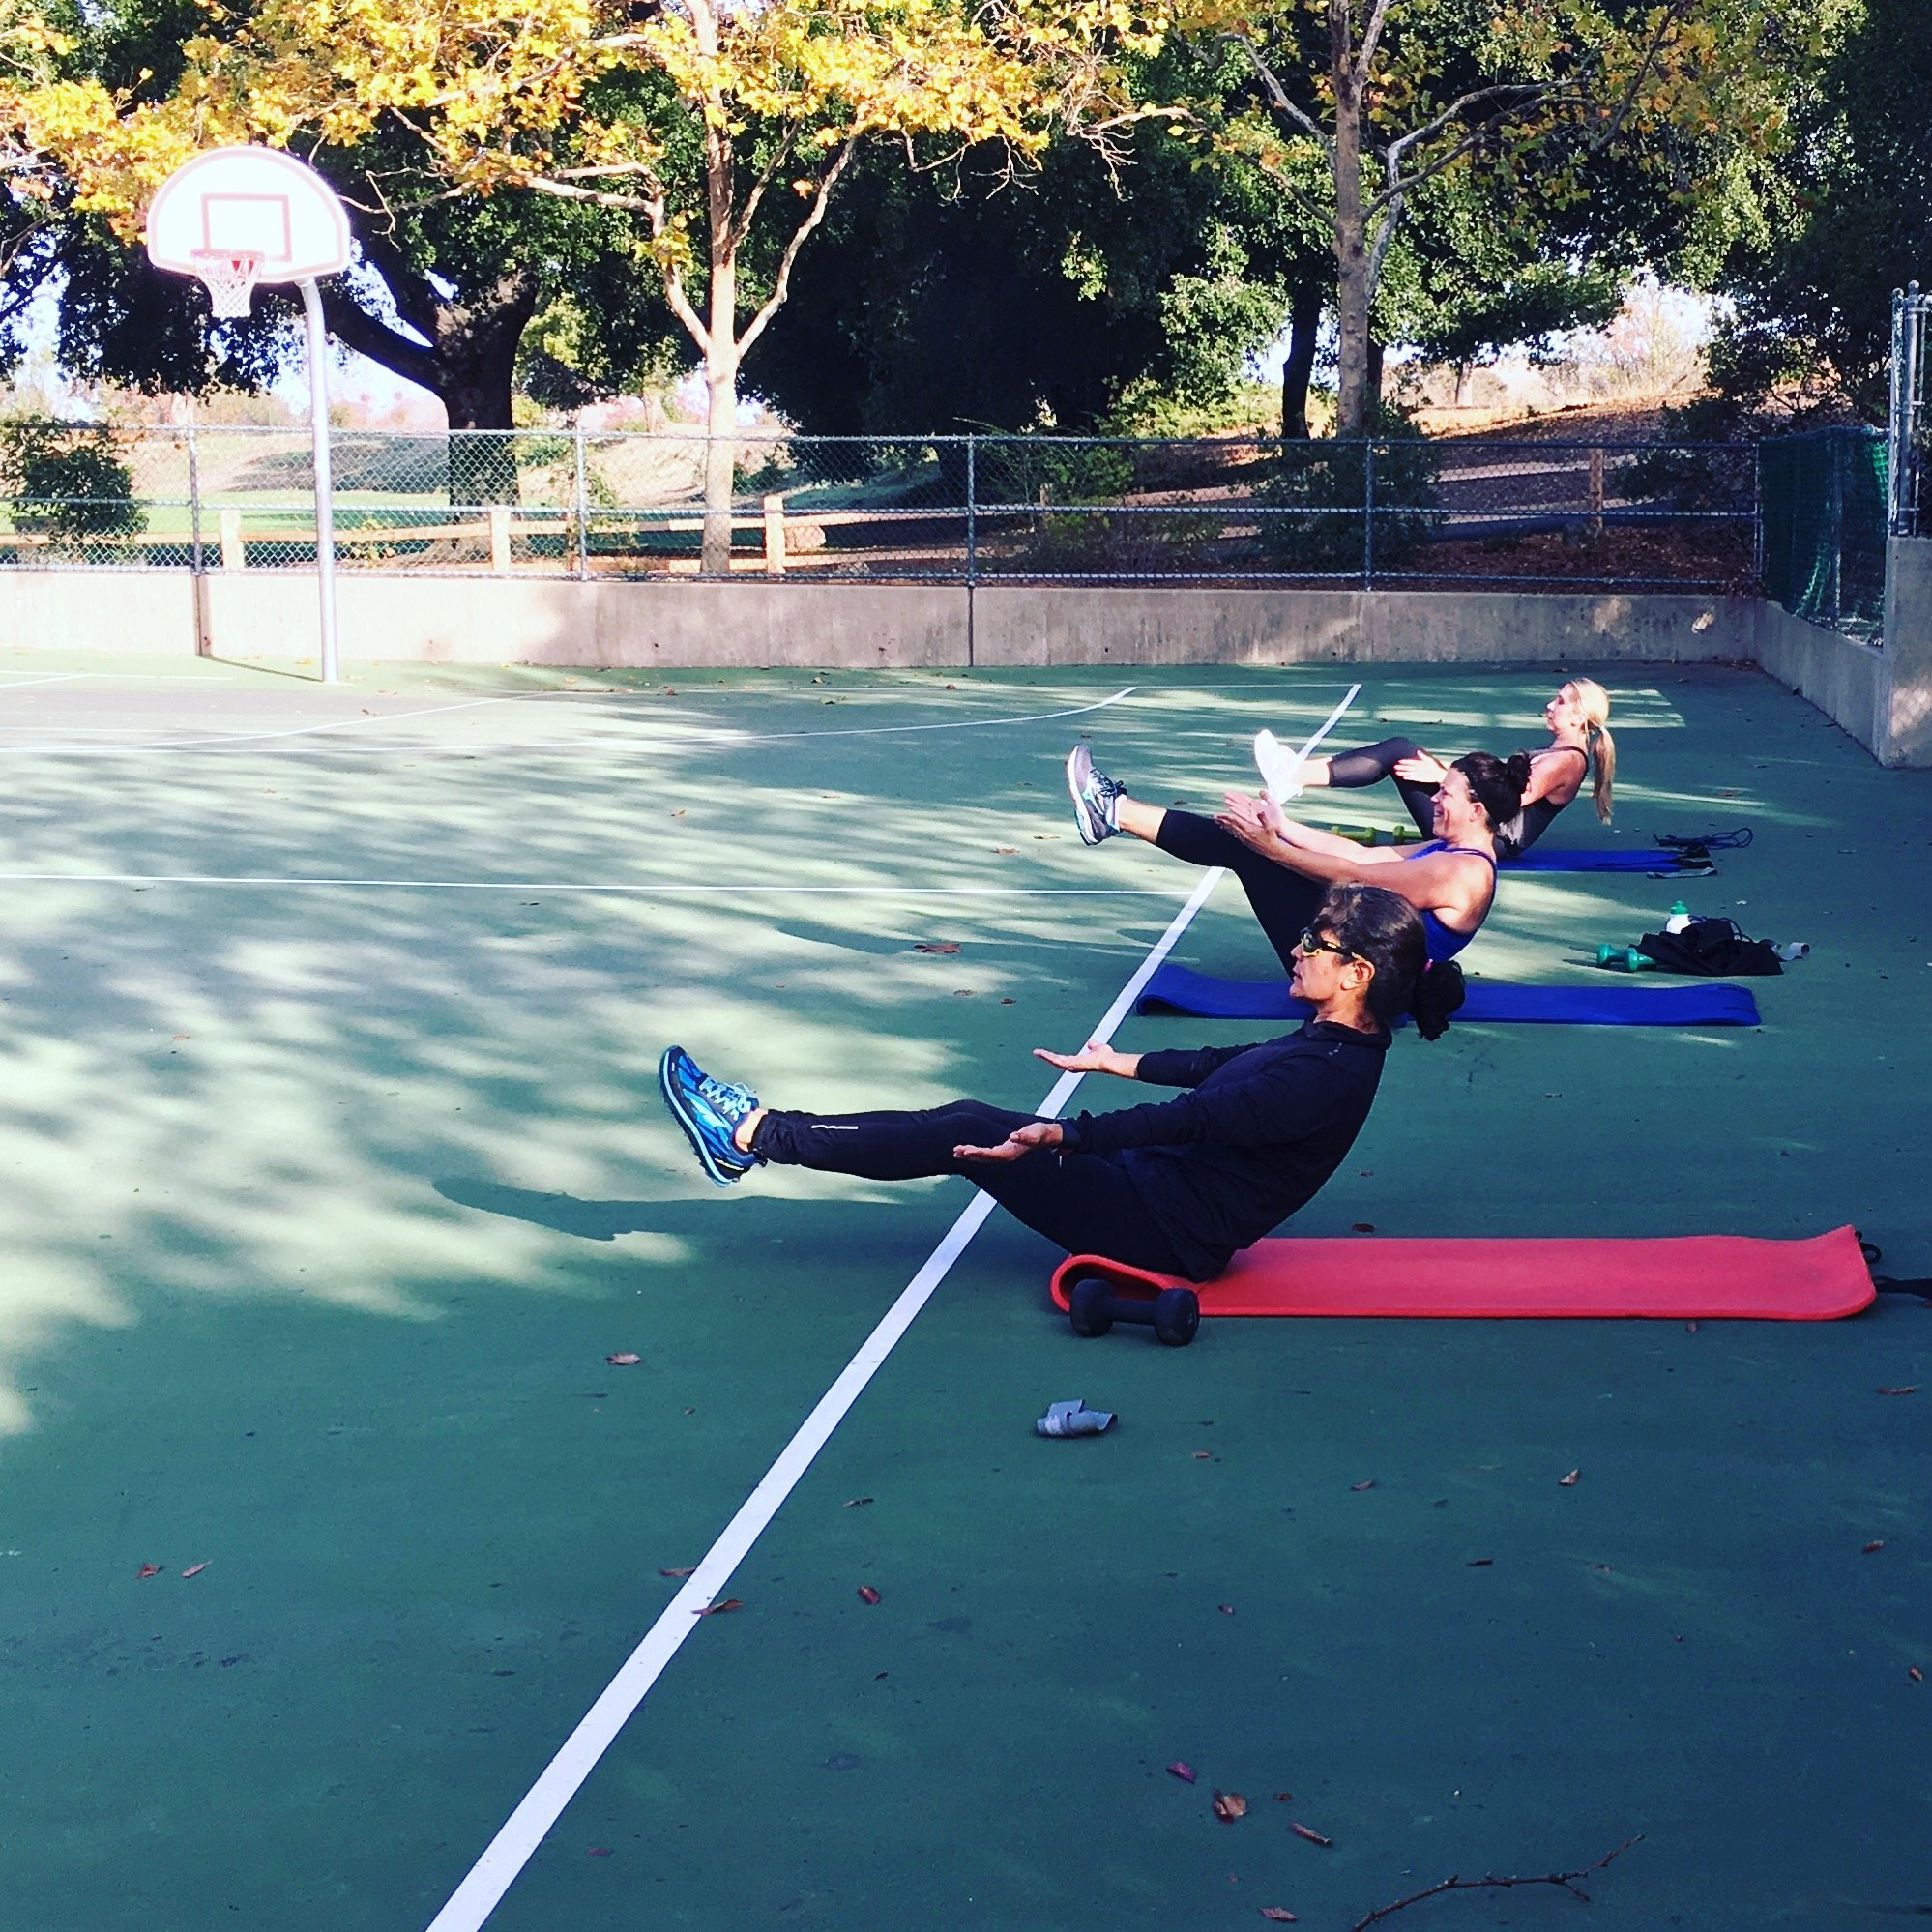 Wednesday Workout: QUICK HIIT PARTY DIY